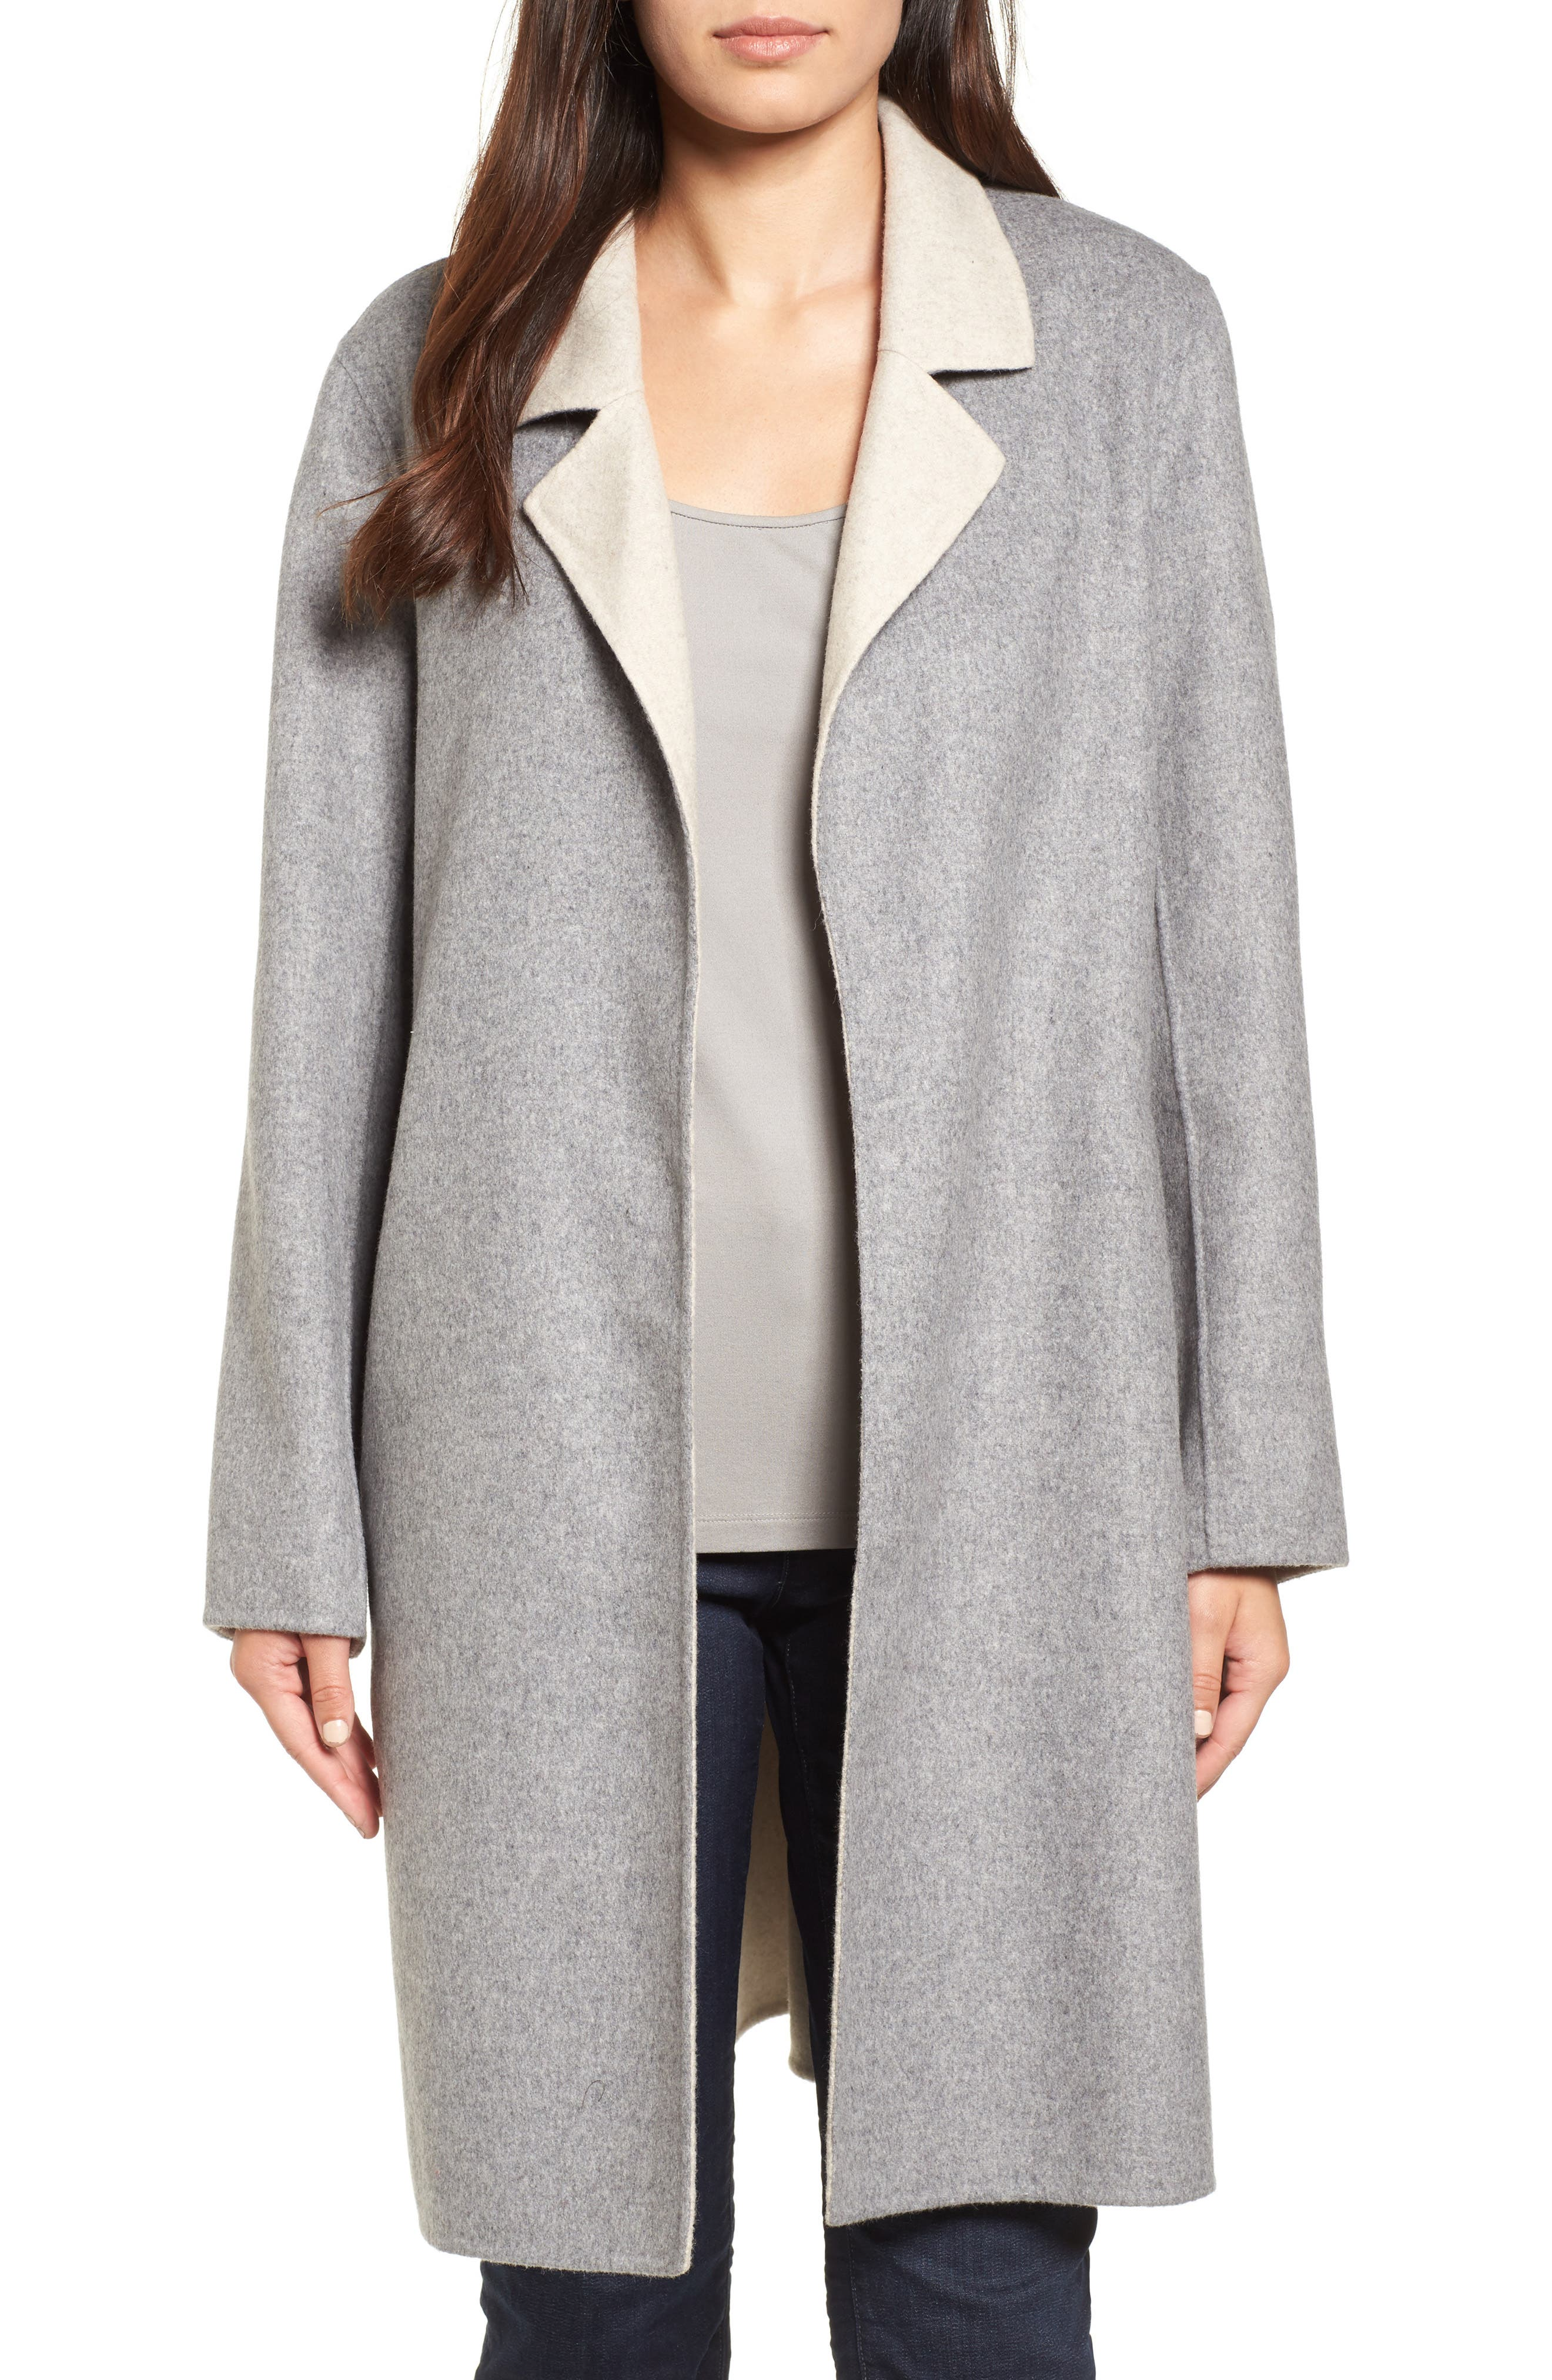 Notch Collar Long Wool Blend Jacket,                             Main thumbnail 1, color,                             252